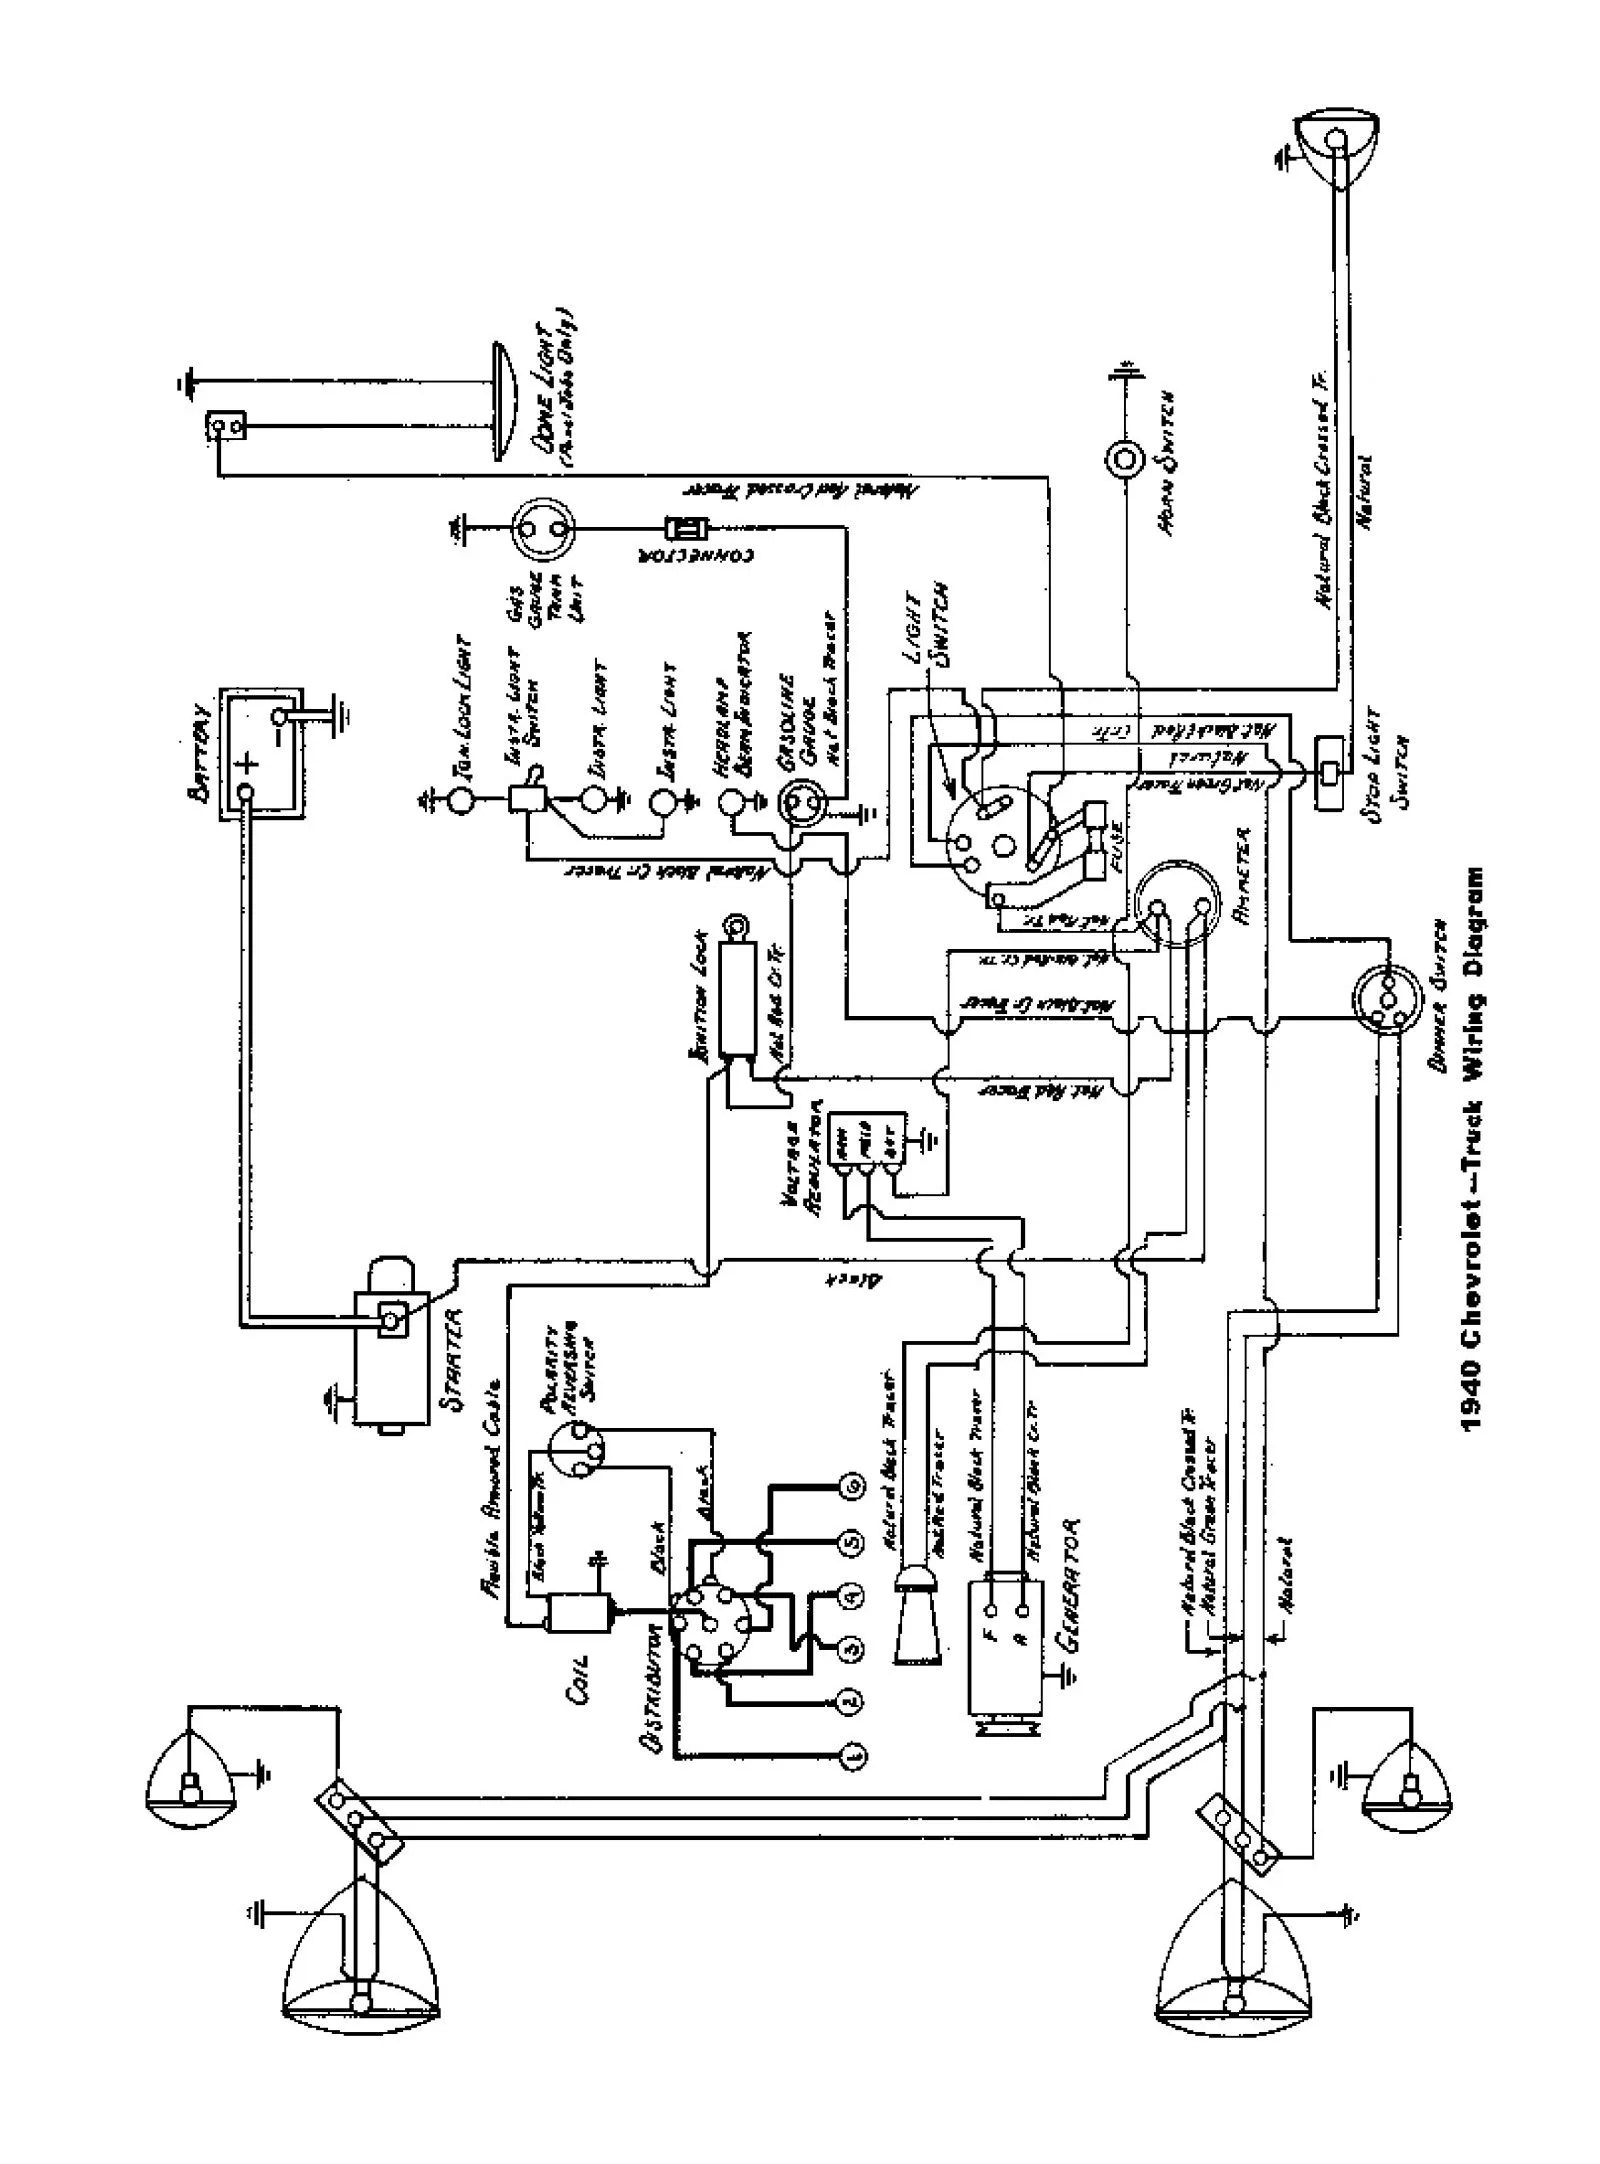 hight resolution of 57 chevy coil wiring wiring diagram technic 57 chevy coil wiring